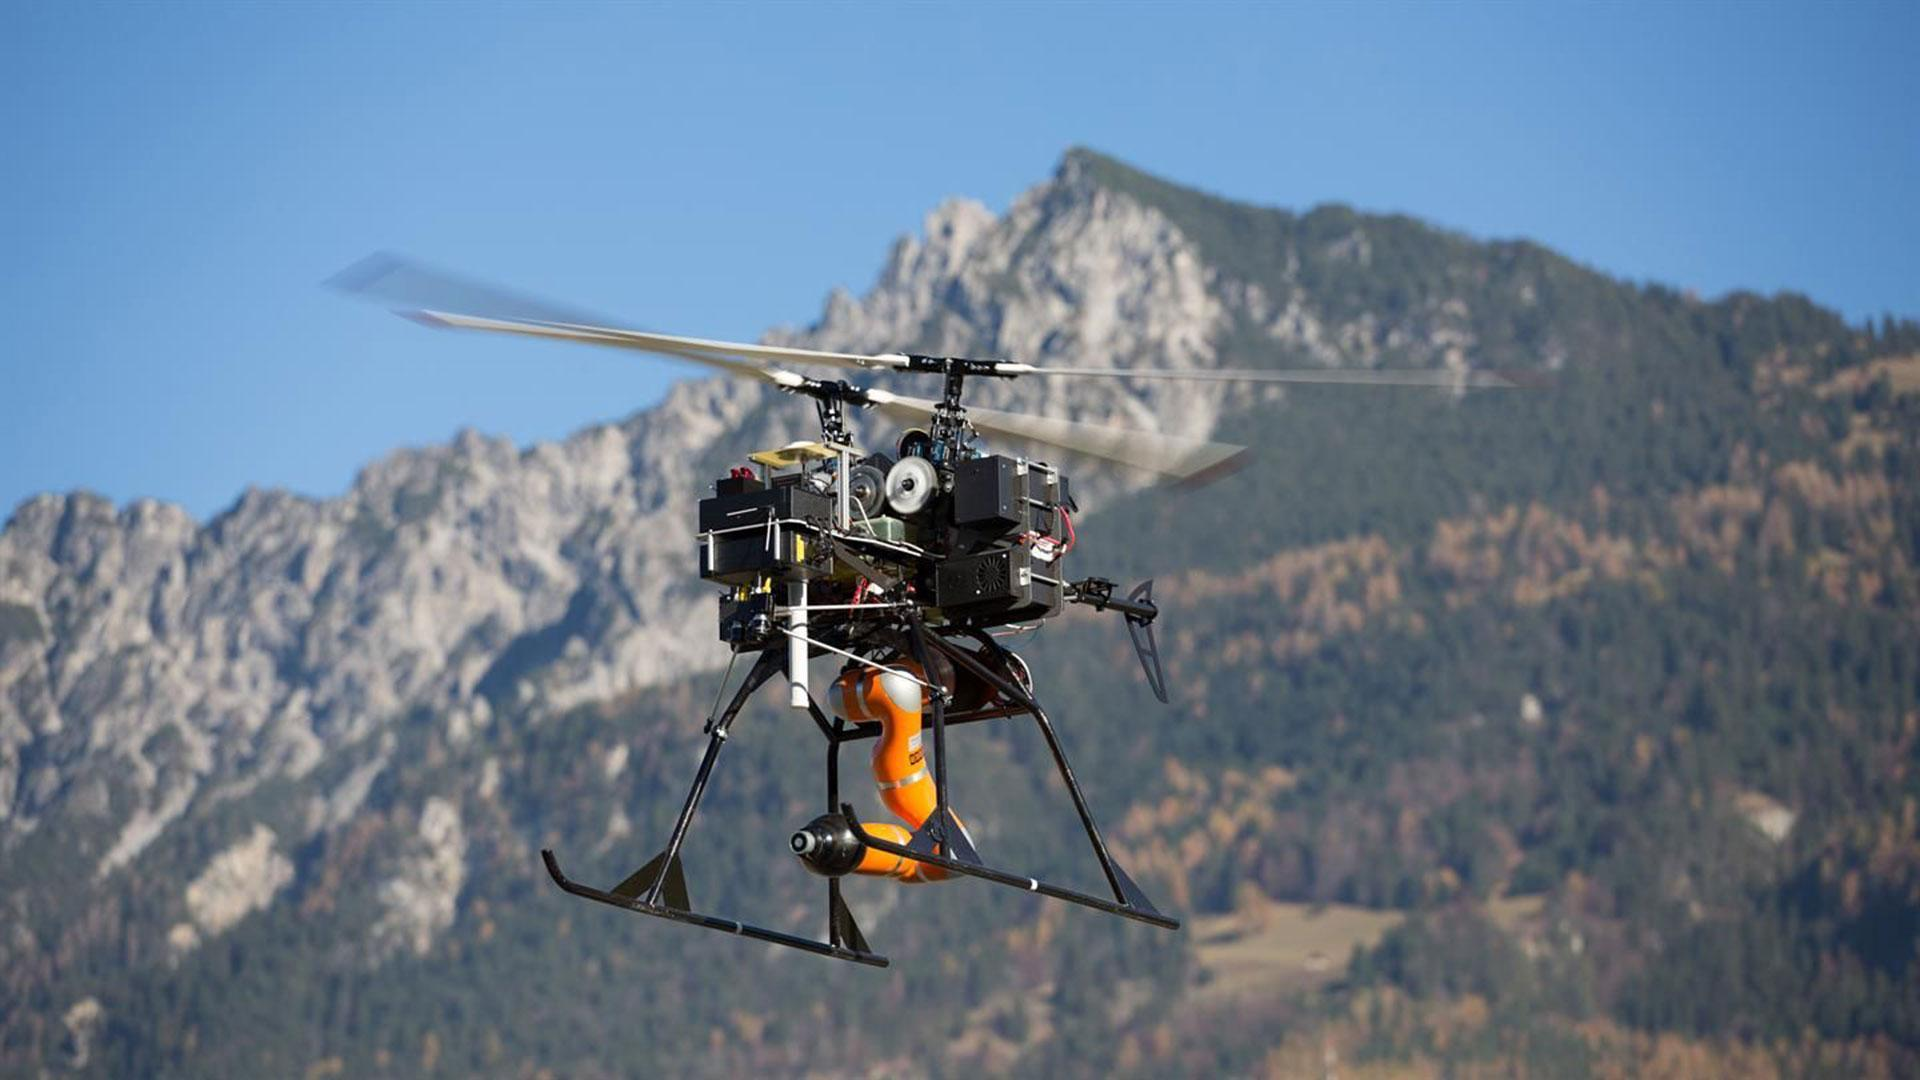 DLR Flight Robots: Robotic Technologies for Airborne Applications